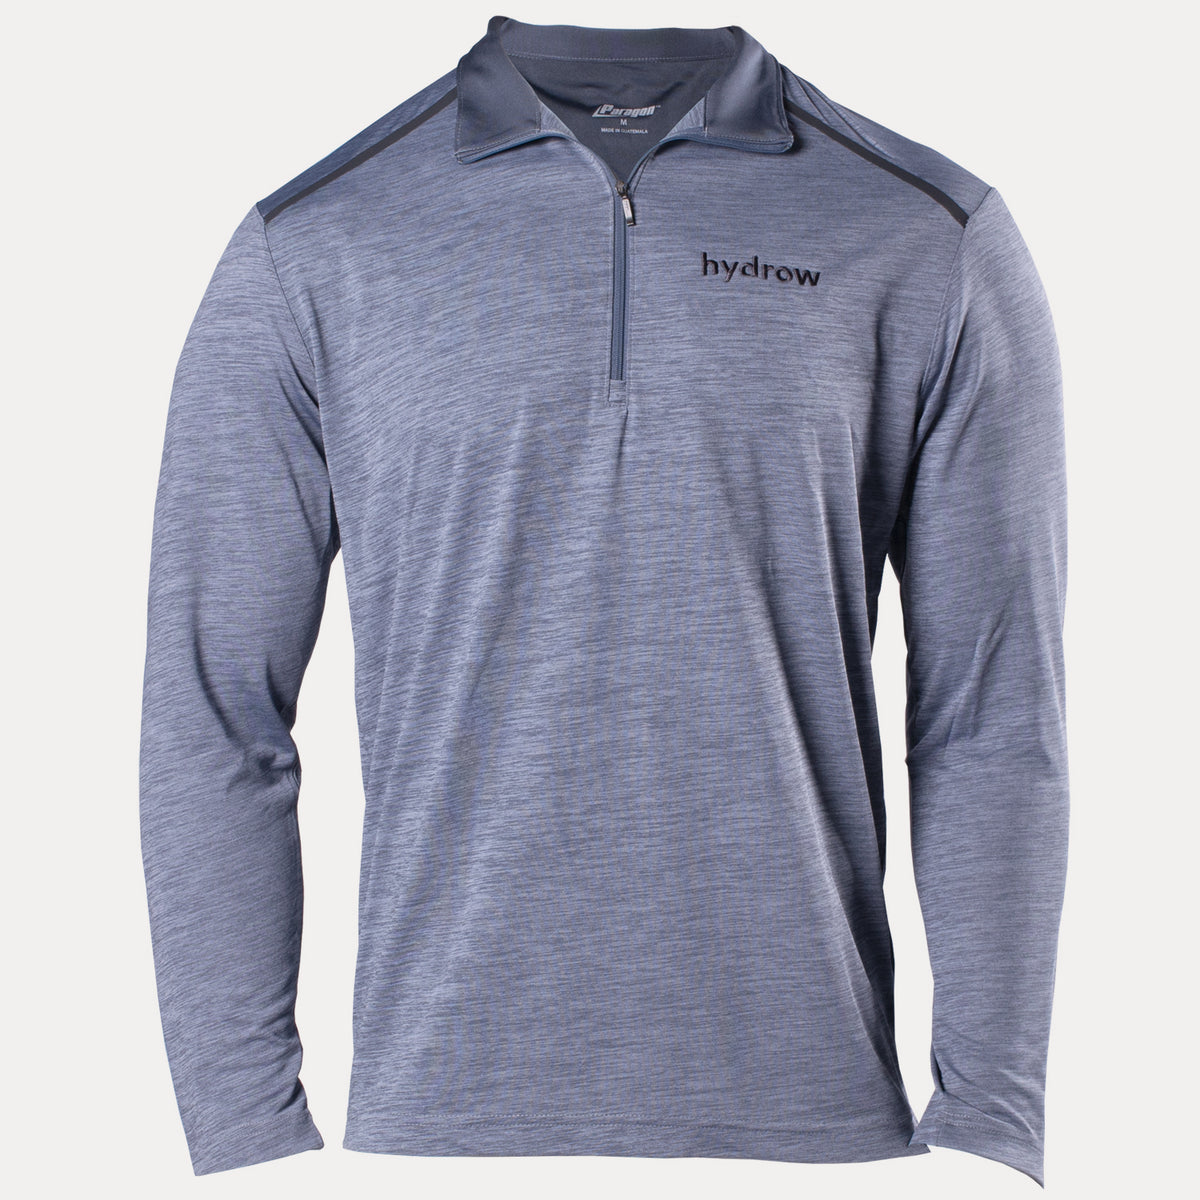 Hydrow Linear Logo Paragon Performance 1/4 Zip Pullover - Men's